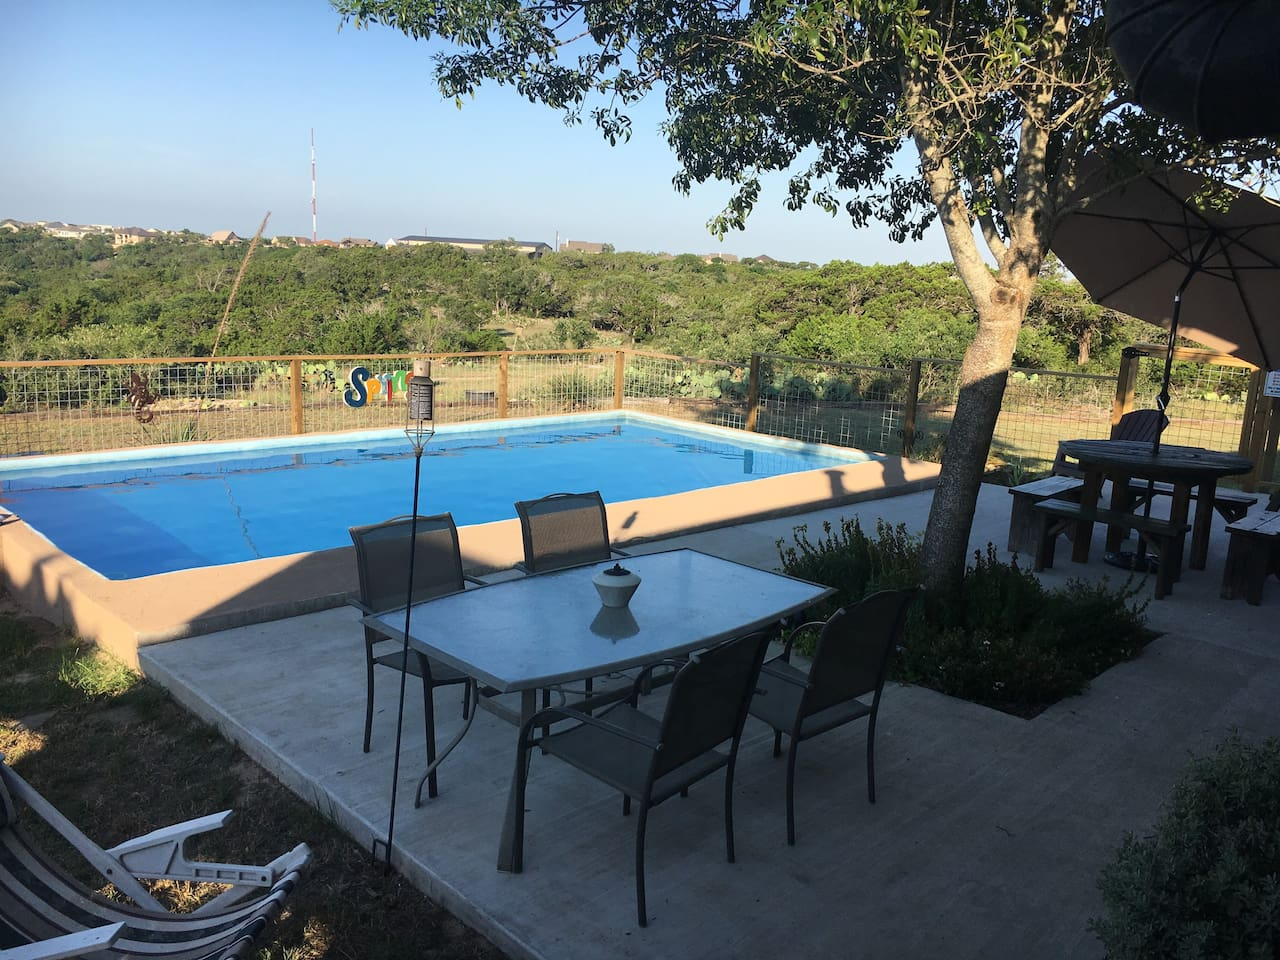 Pool with view of Kerrville on 18 acres! We also have a hot tub, with outdoor shower to rinse off first